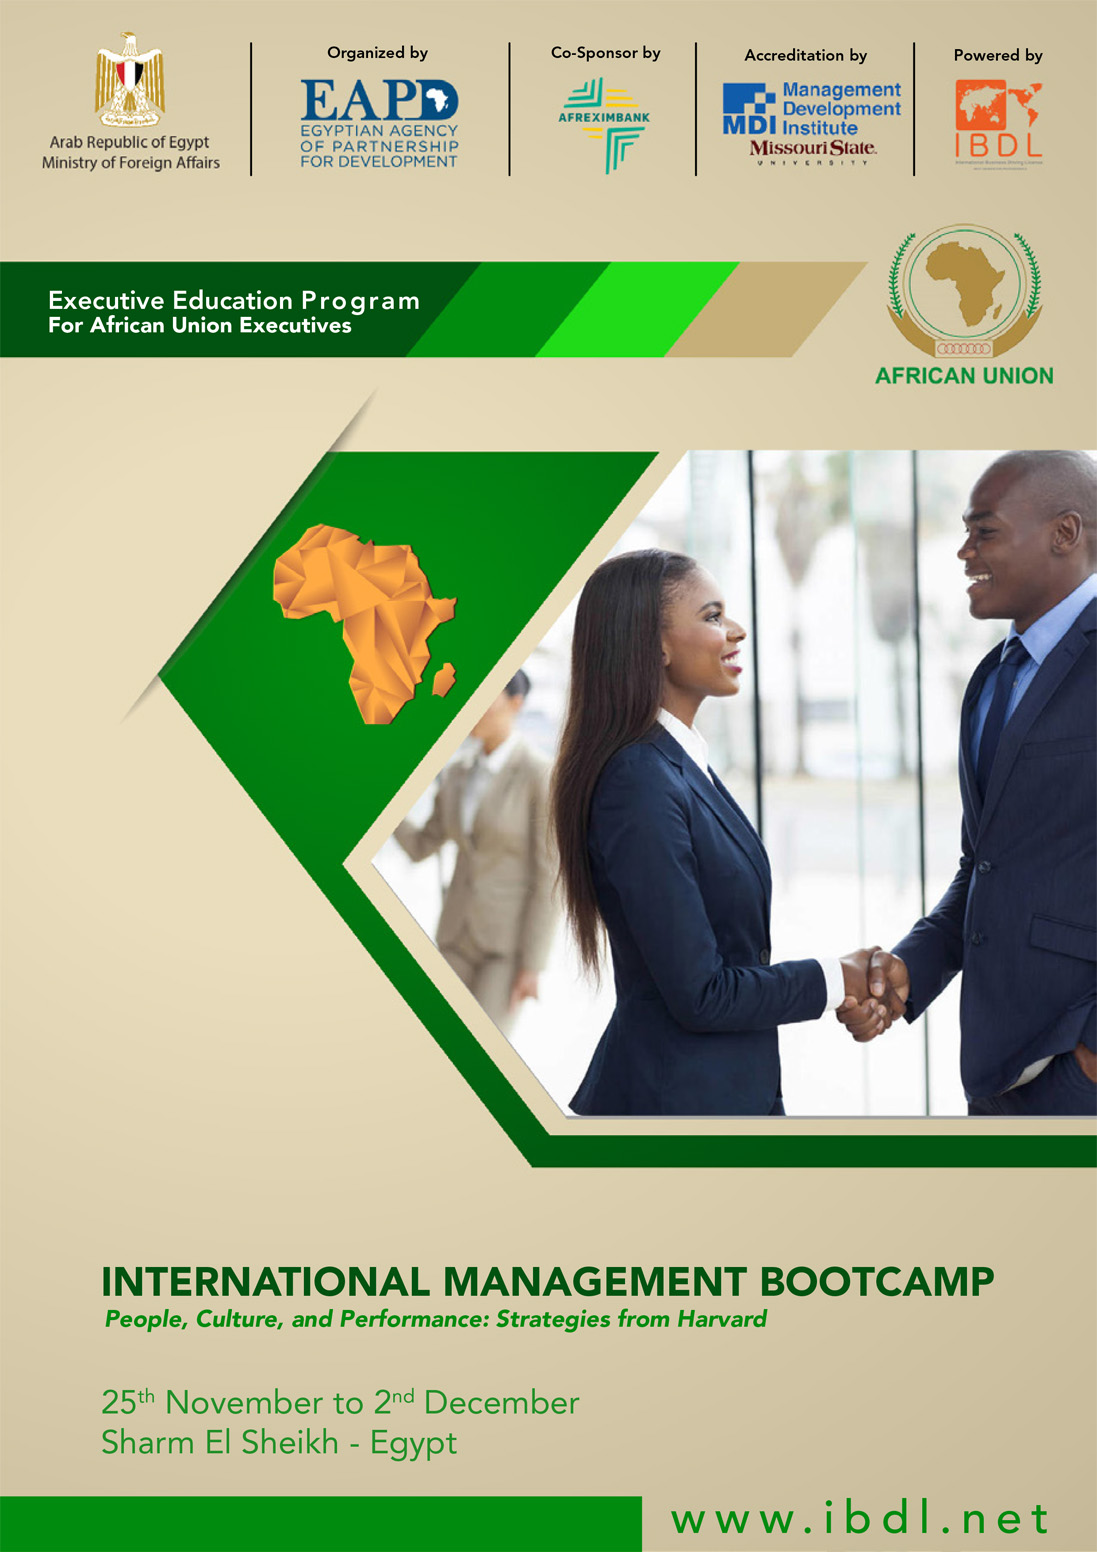 IBDL launches the First Round of African Union Executives' Bootcamp